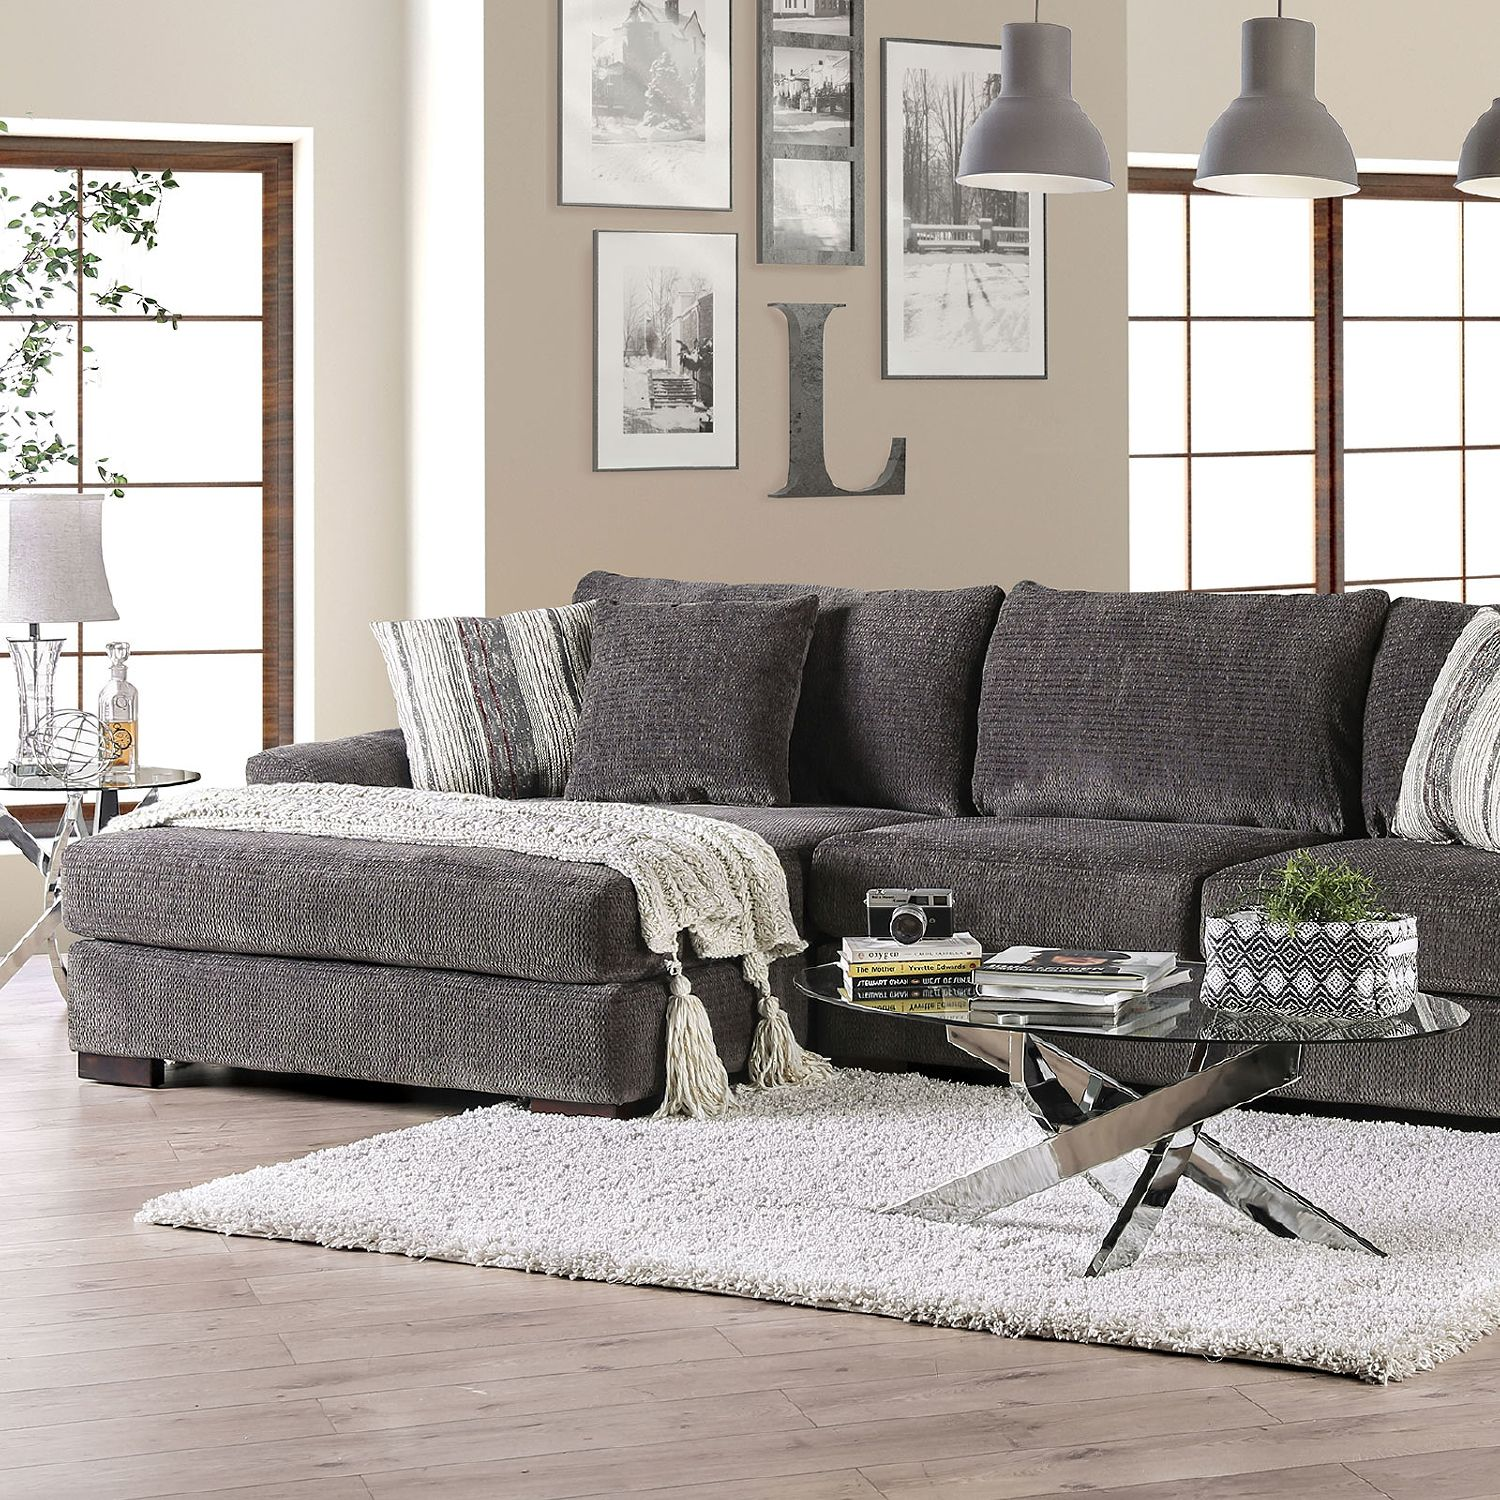 Sigge Charcoal Sectional Sofa In 2020 Sectional Sofa Sofa Loveseat Set Couch Loveseat